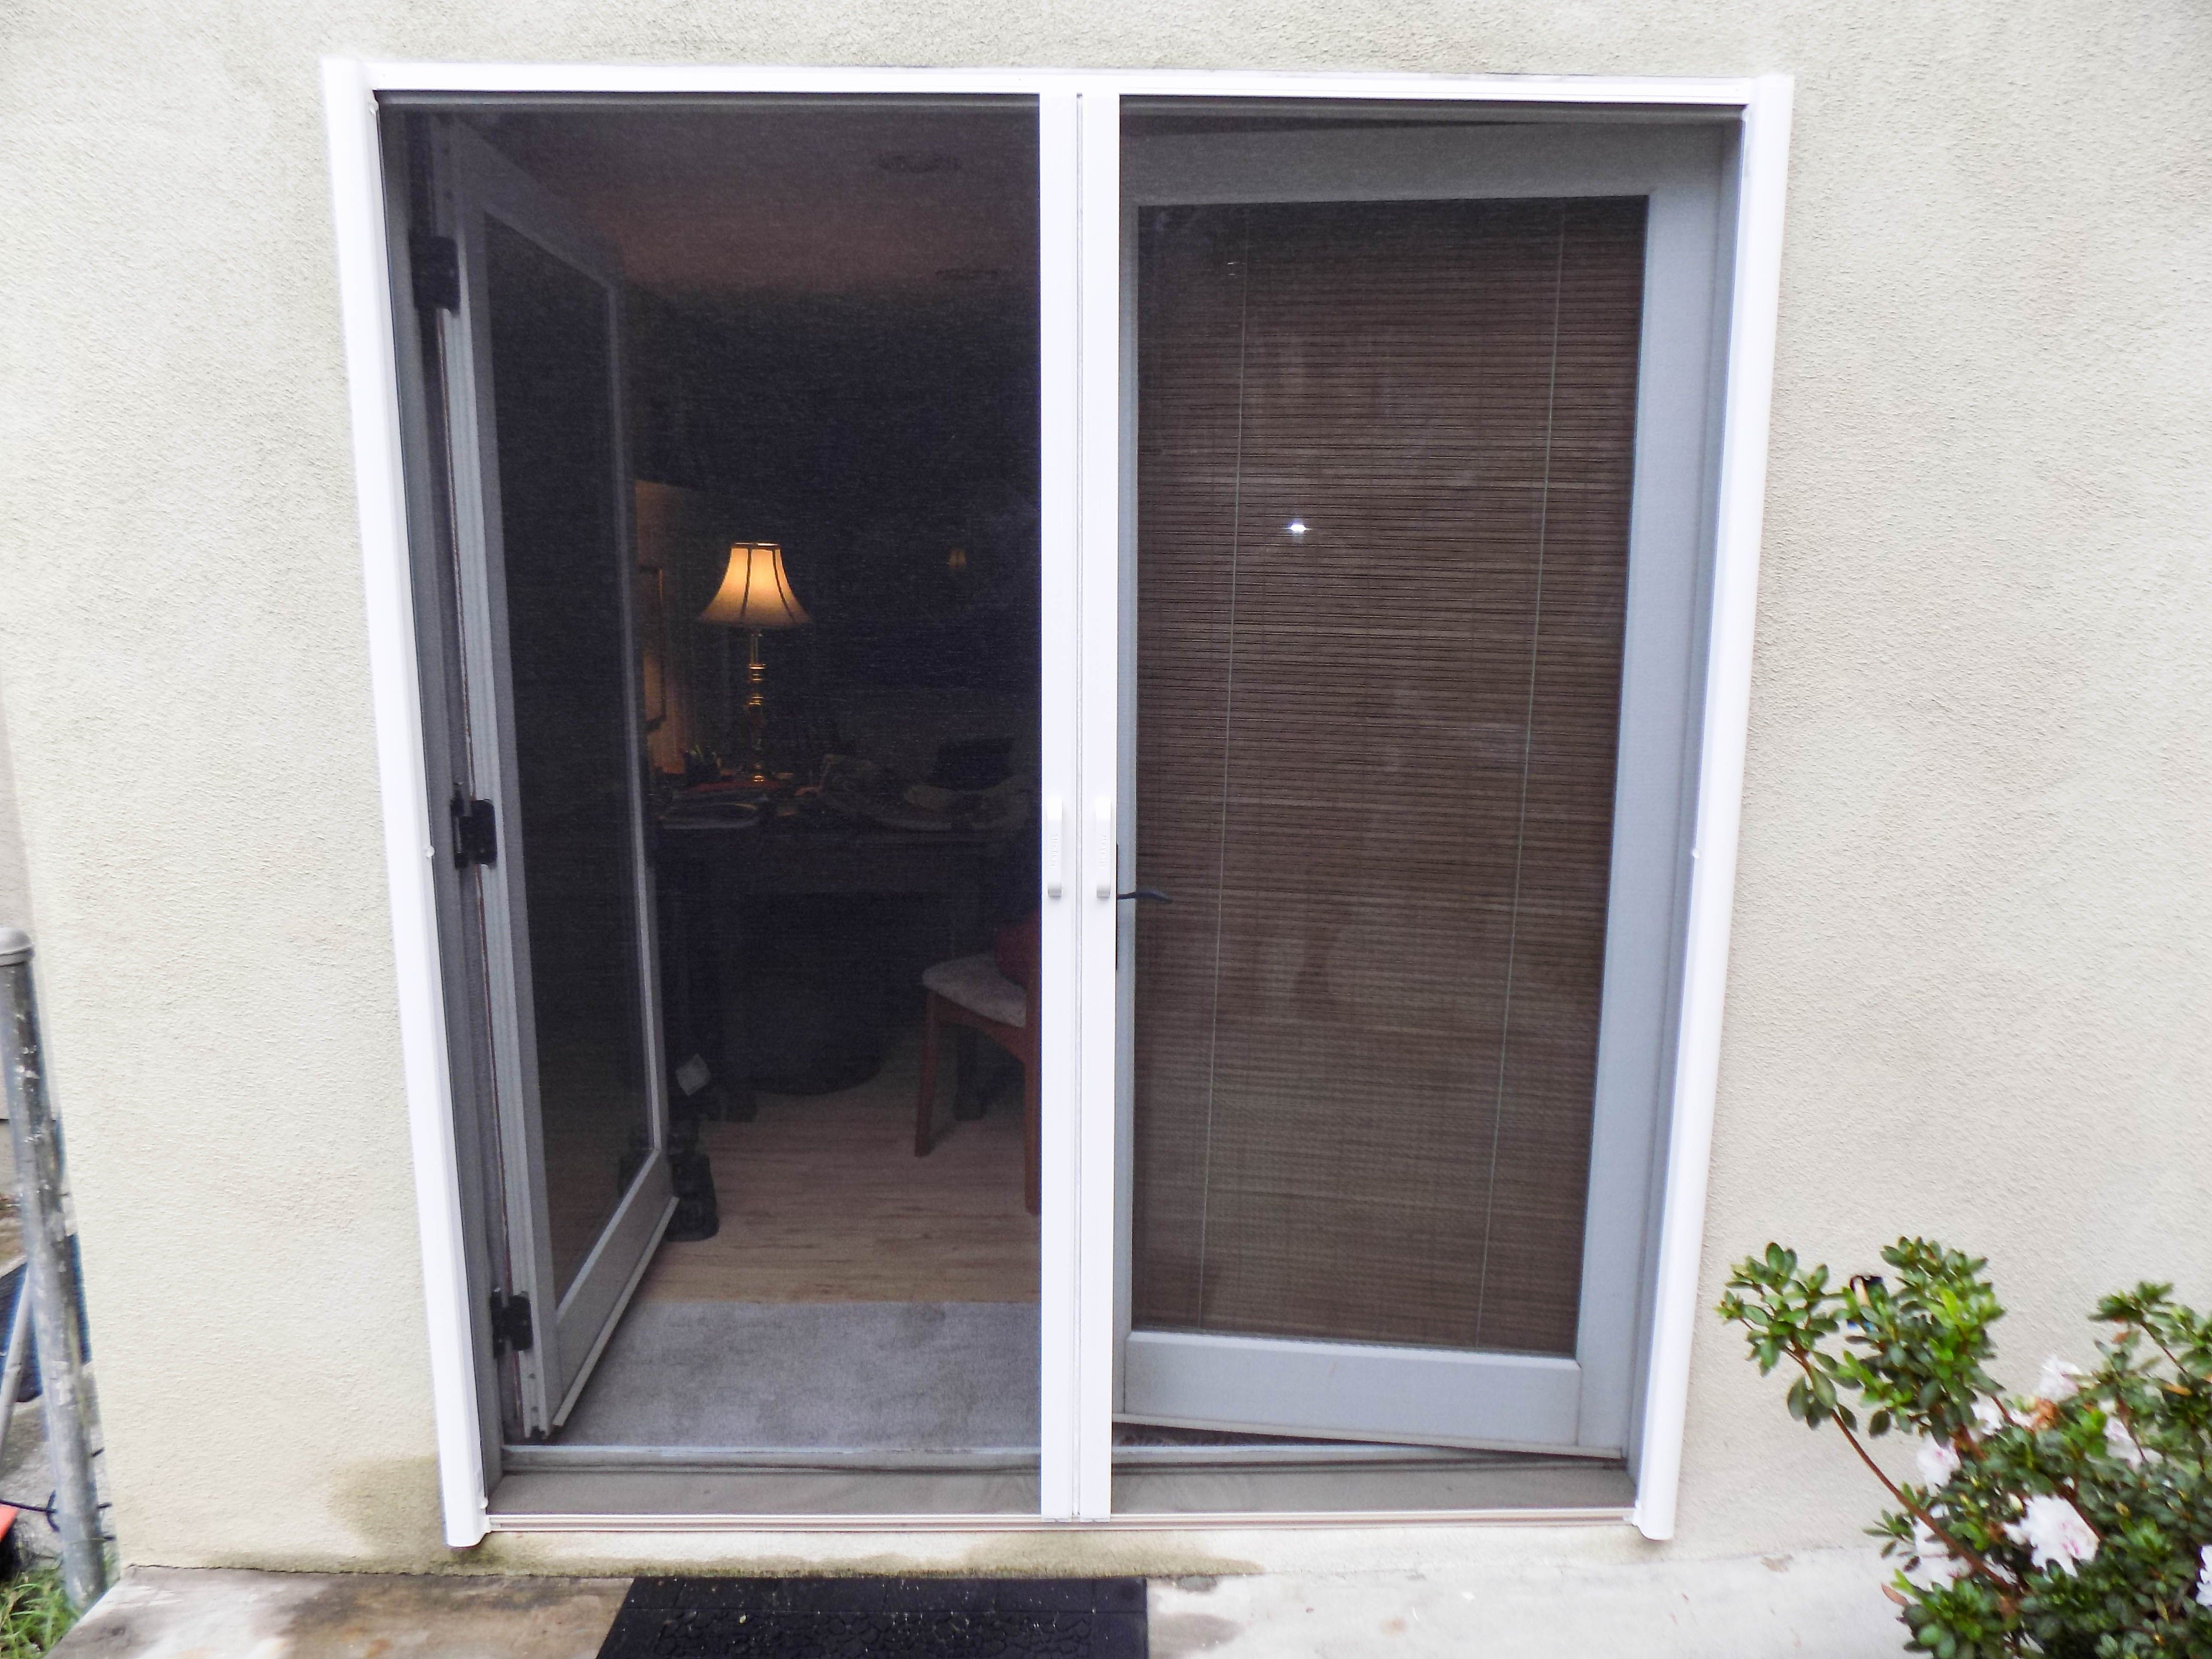 Check Out This Installation Of White Framed Double Stowaway Retractable Screen Doors Over A Set Of Back Retractable Screen Door French Doors Retractable Screen